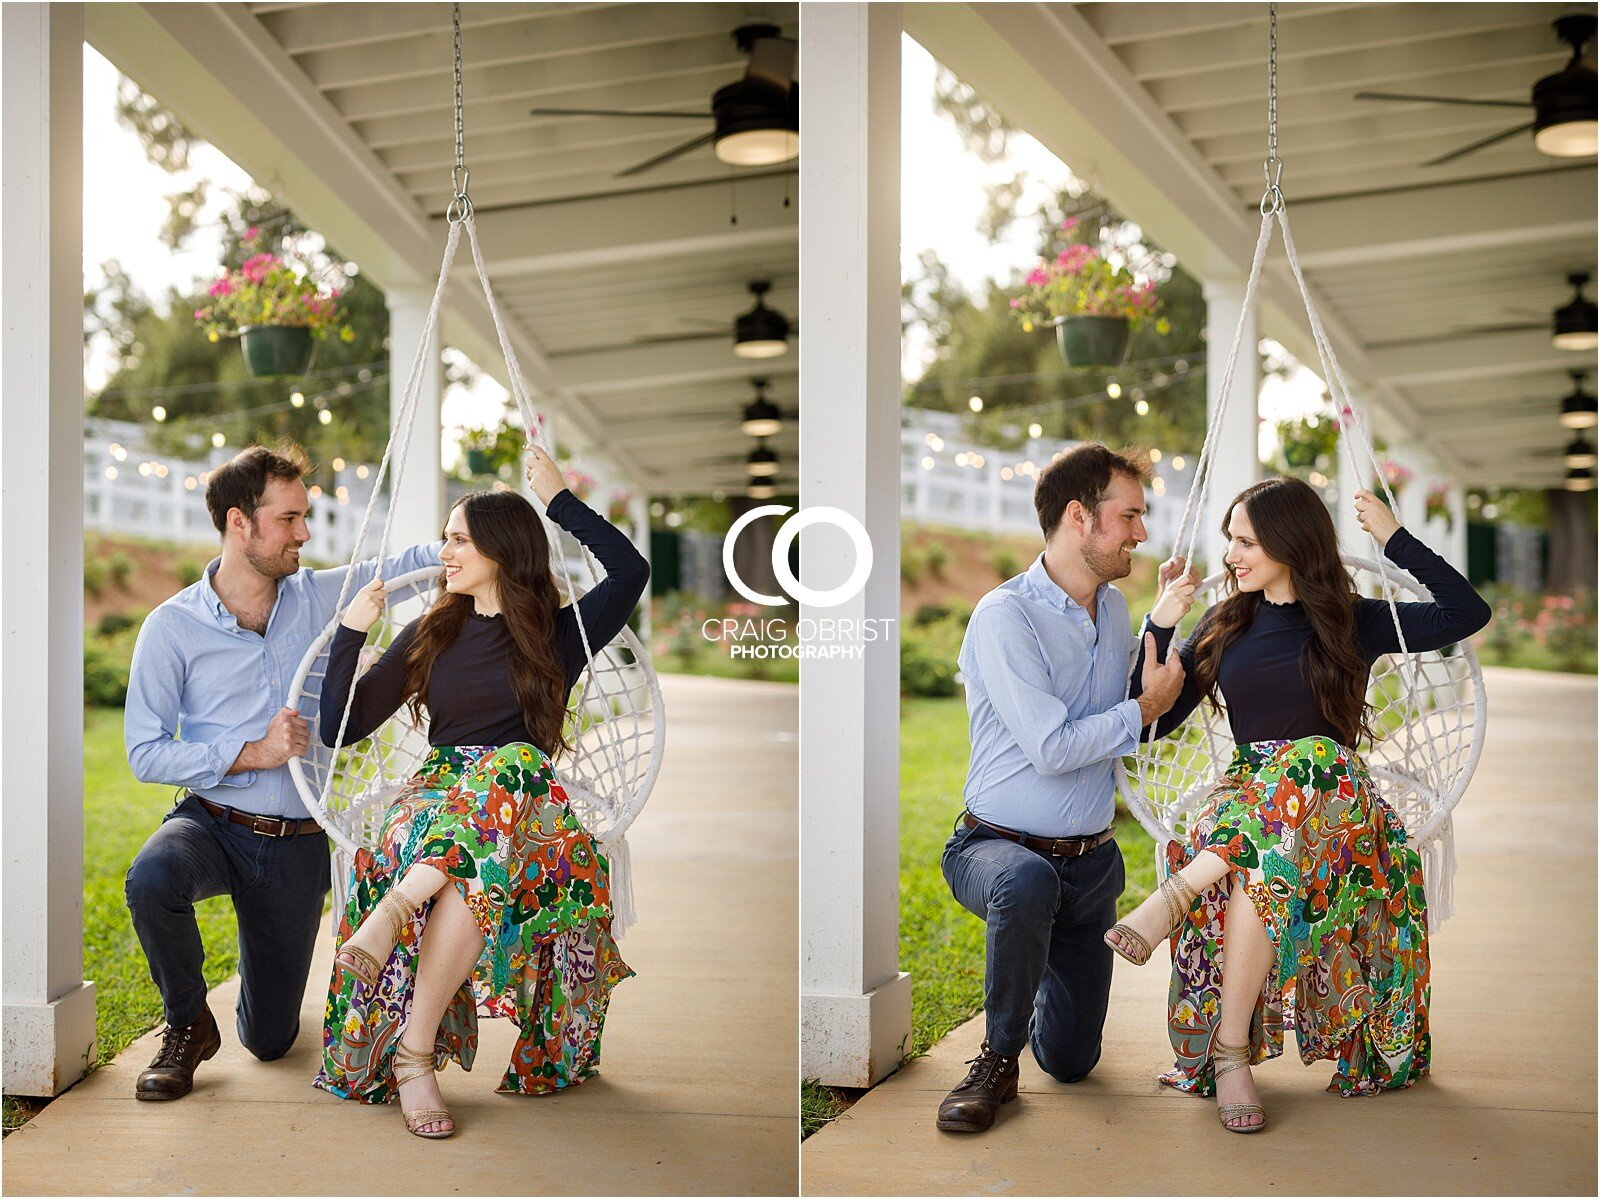 The Barn at Little River Little River Farms Engagement Wedding Portraits Fairy Tale_0008.jpg